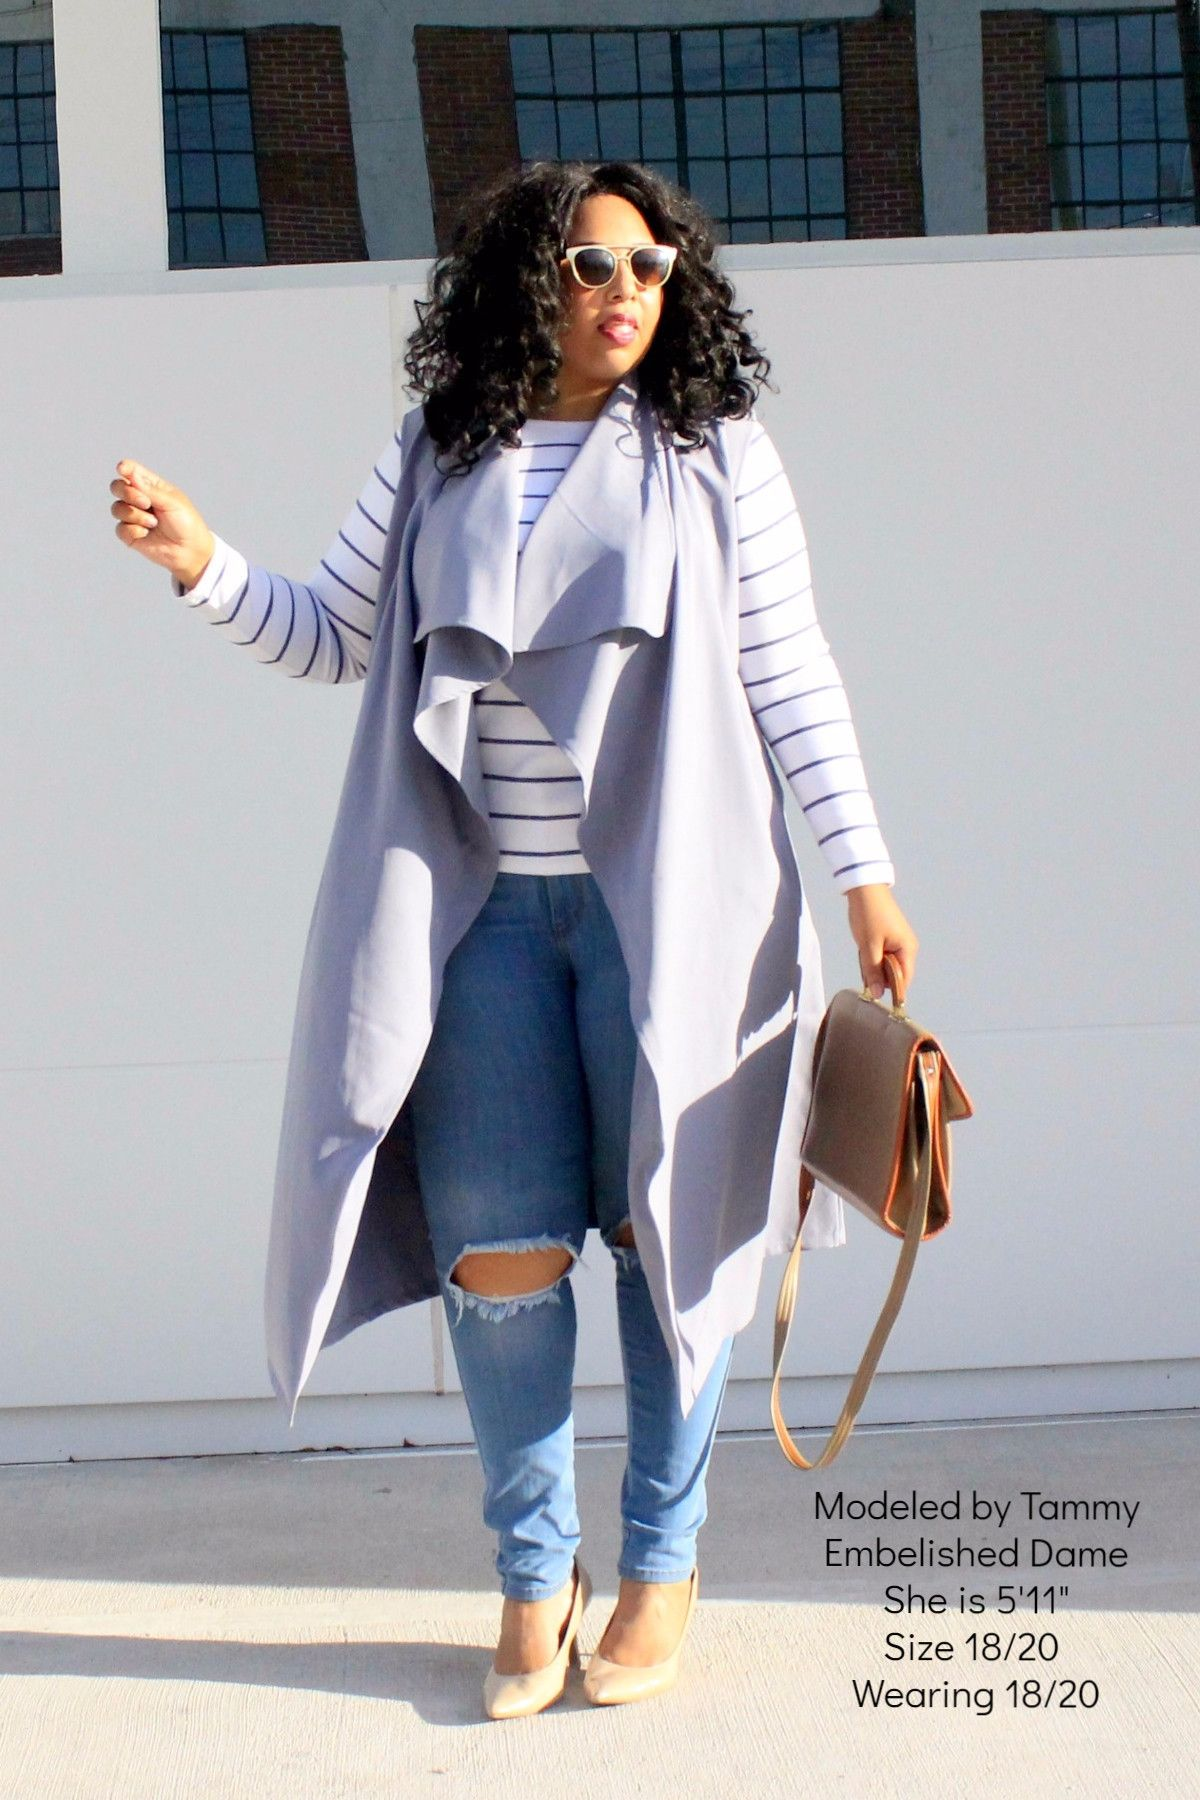 25 plus size winter work outfits you can try 10 - 25-plus-size-winter-work-outfits-you-can-try-10